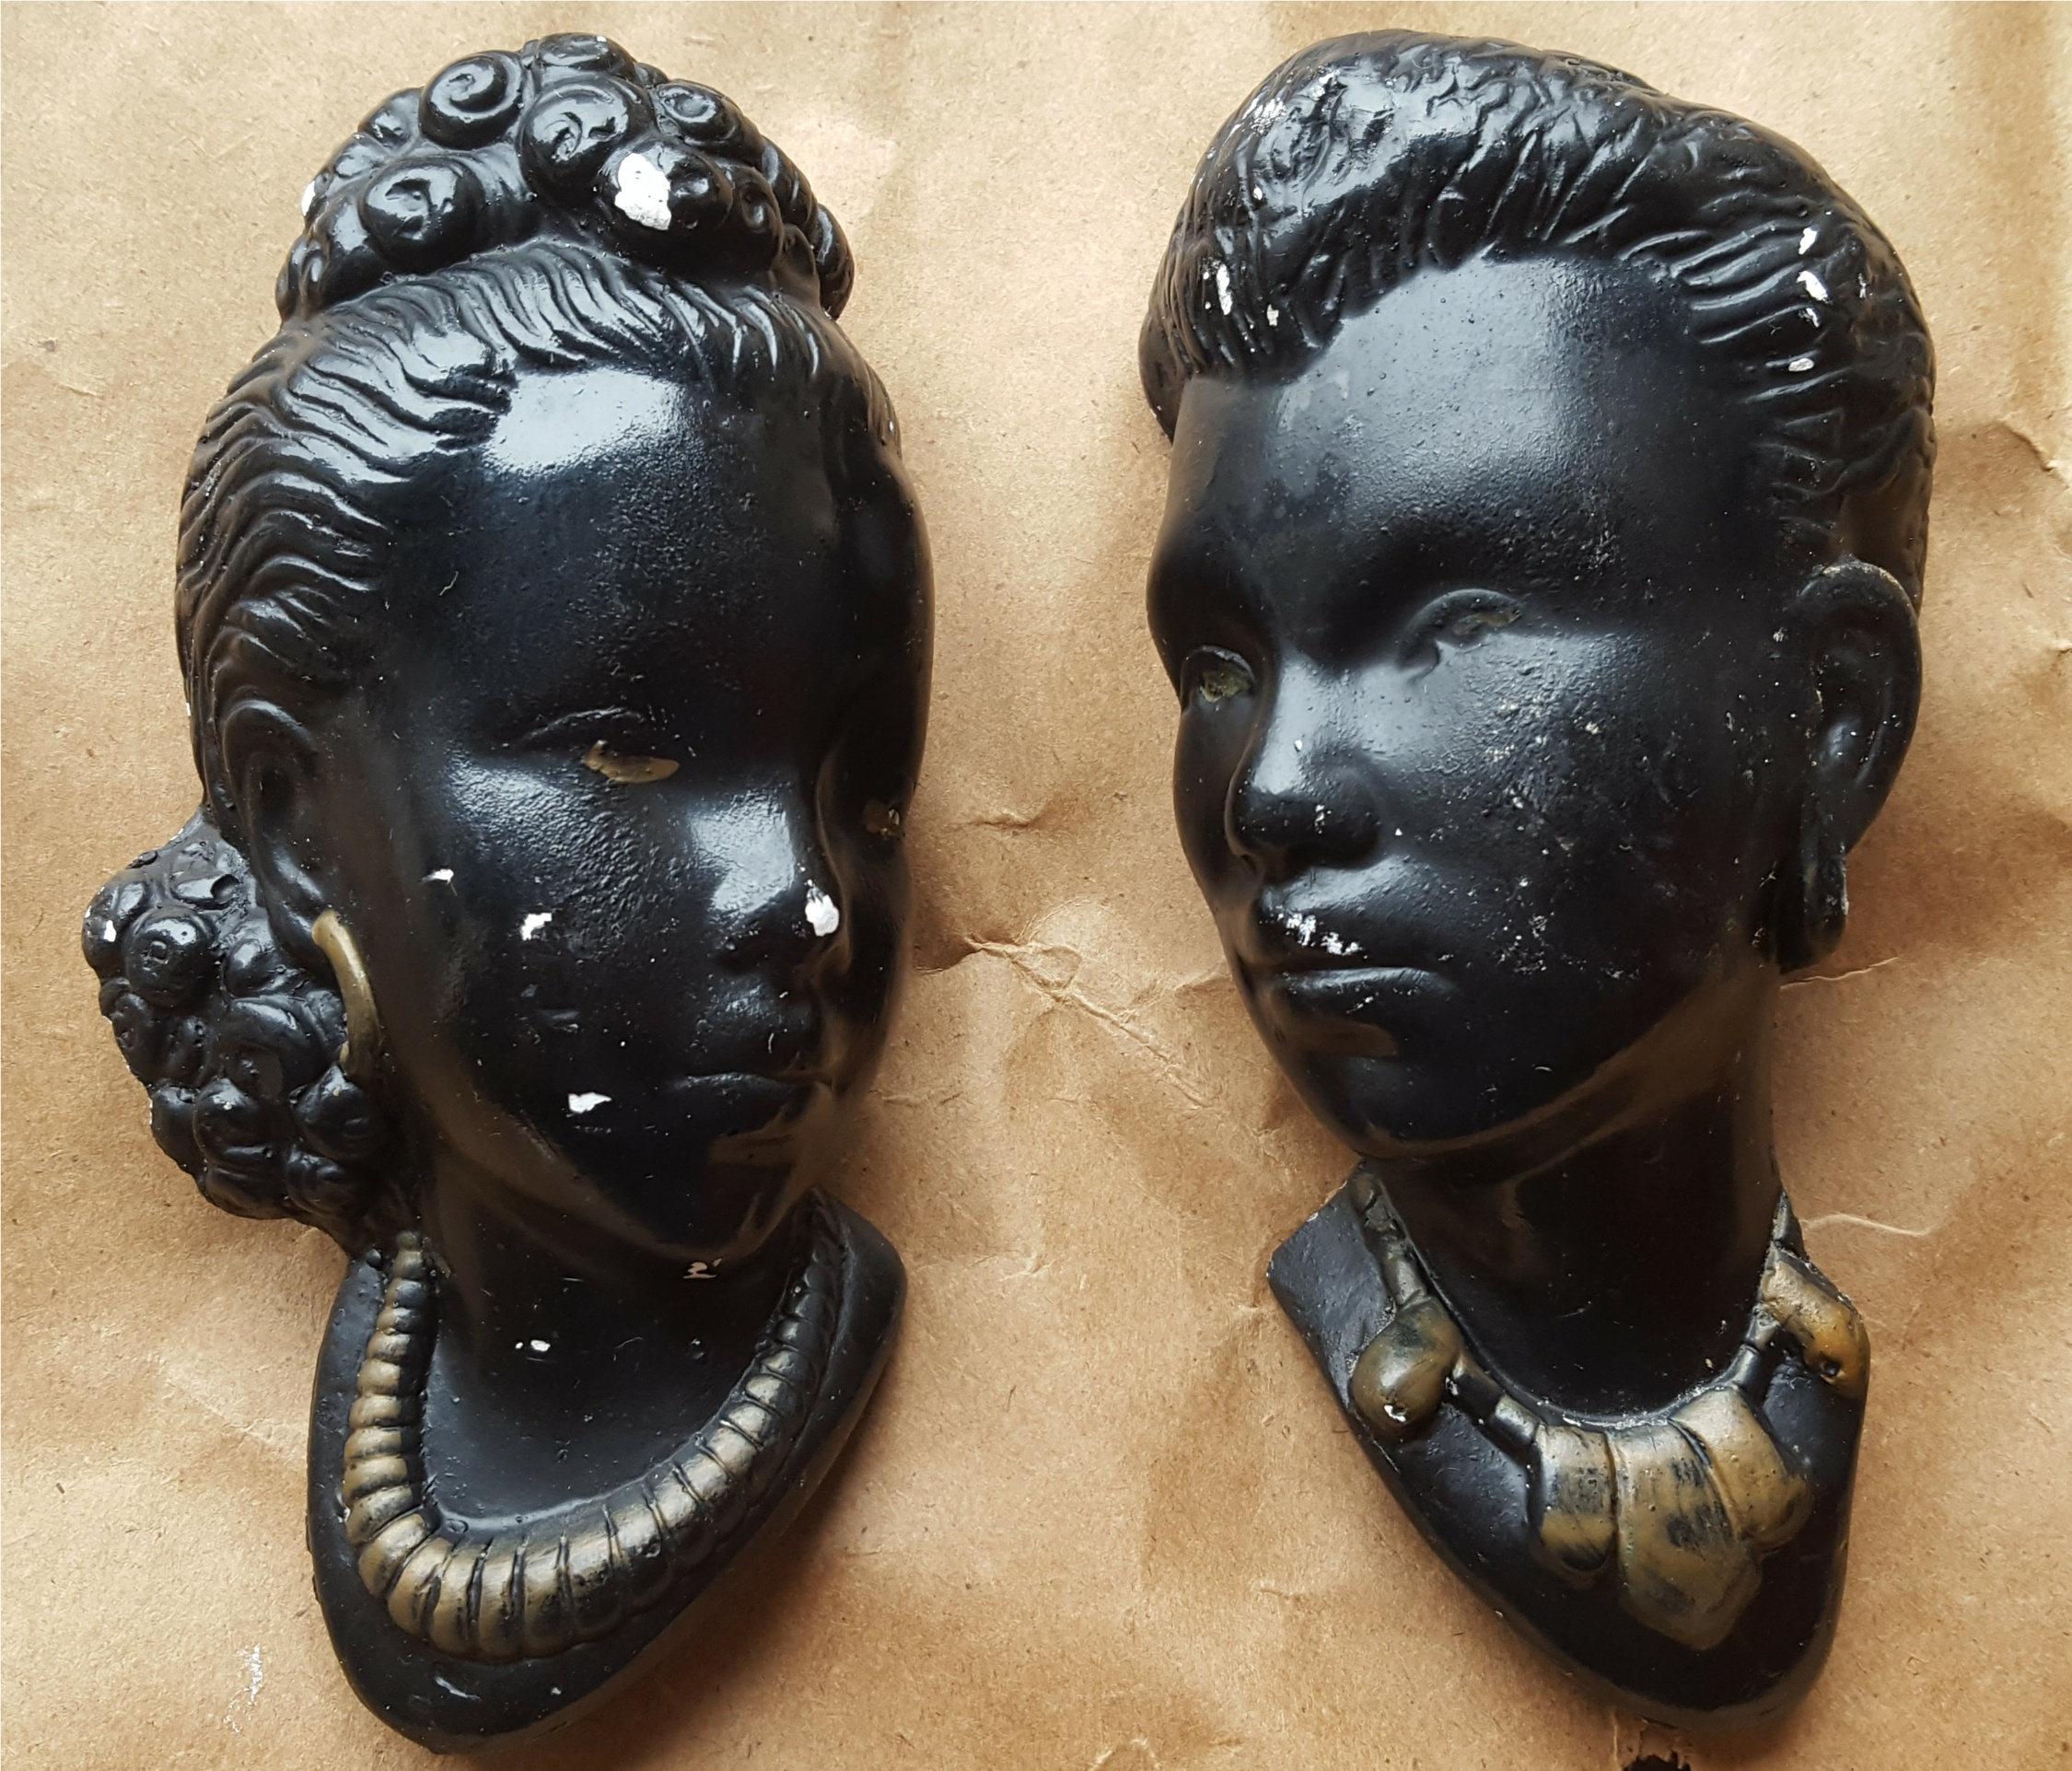 Lot 72 - Vintage Retro Kitsch Wall Plaques Asian Busts NO RESERVE